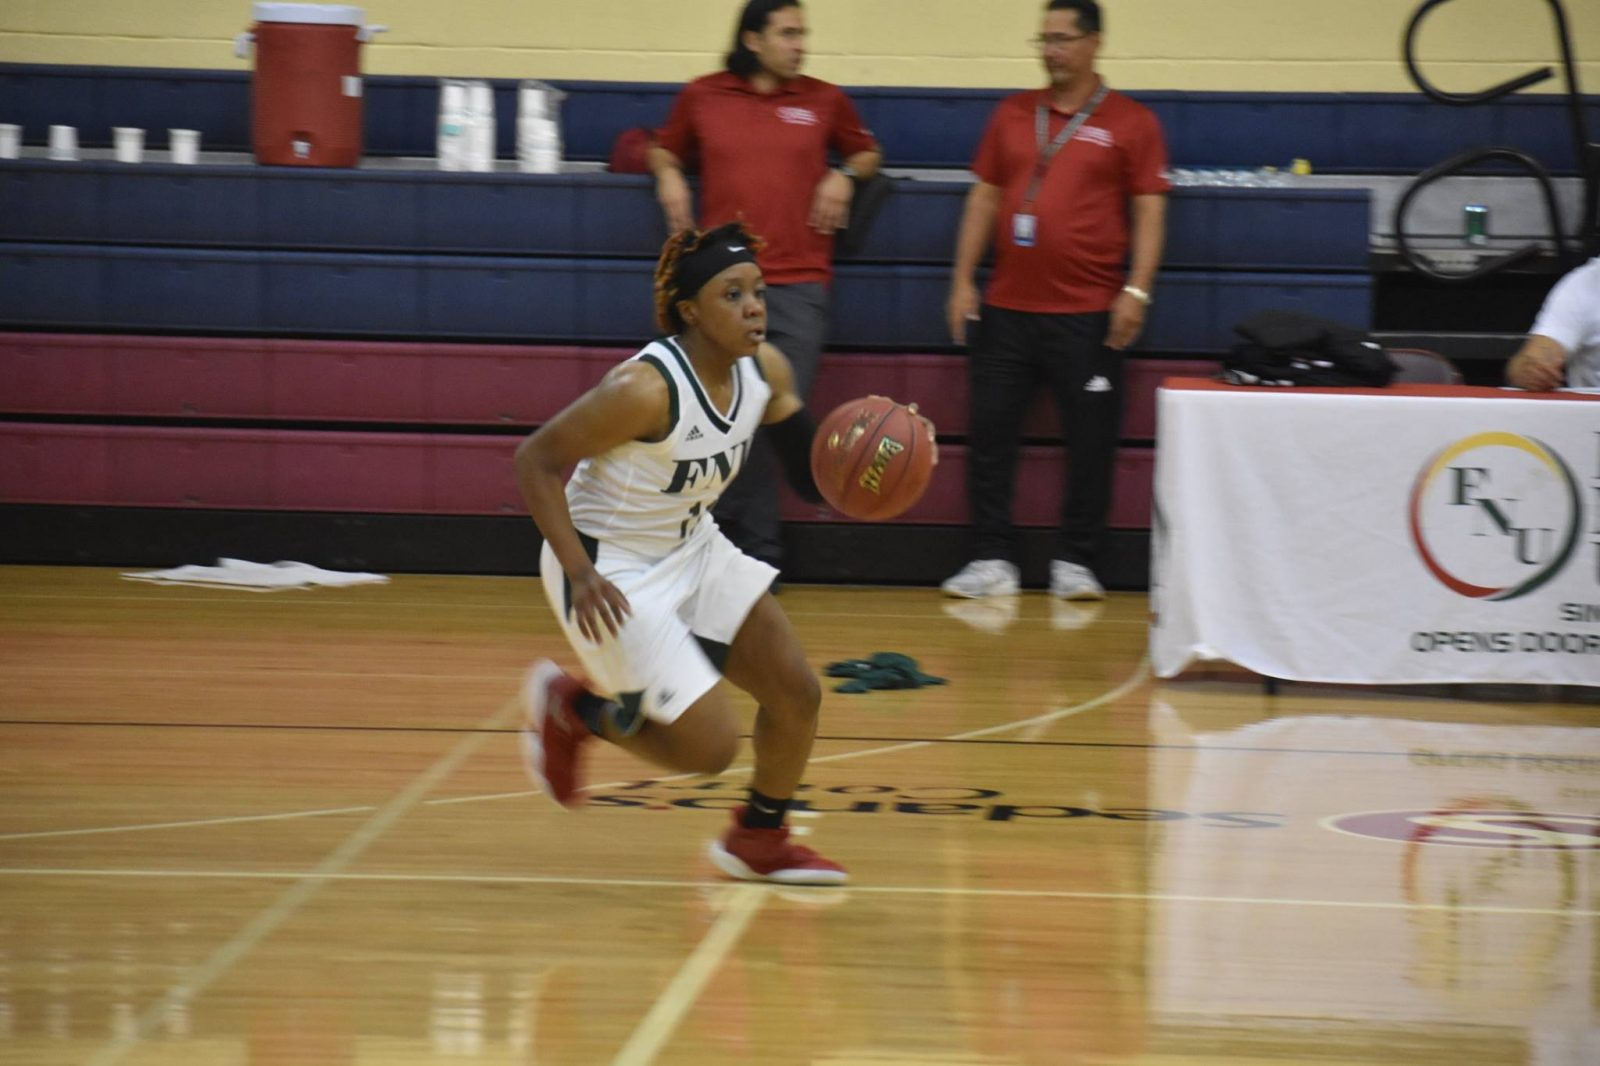 FNU Women's Basketball Player dribbling the ball